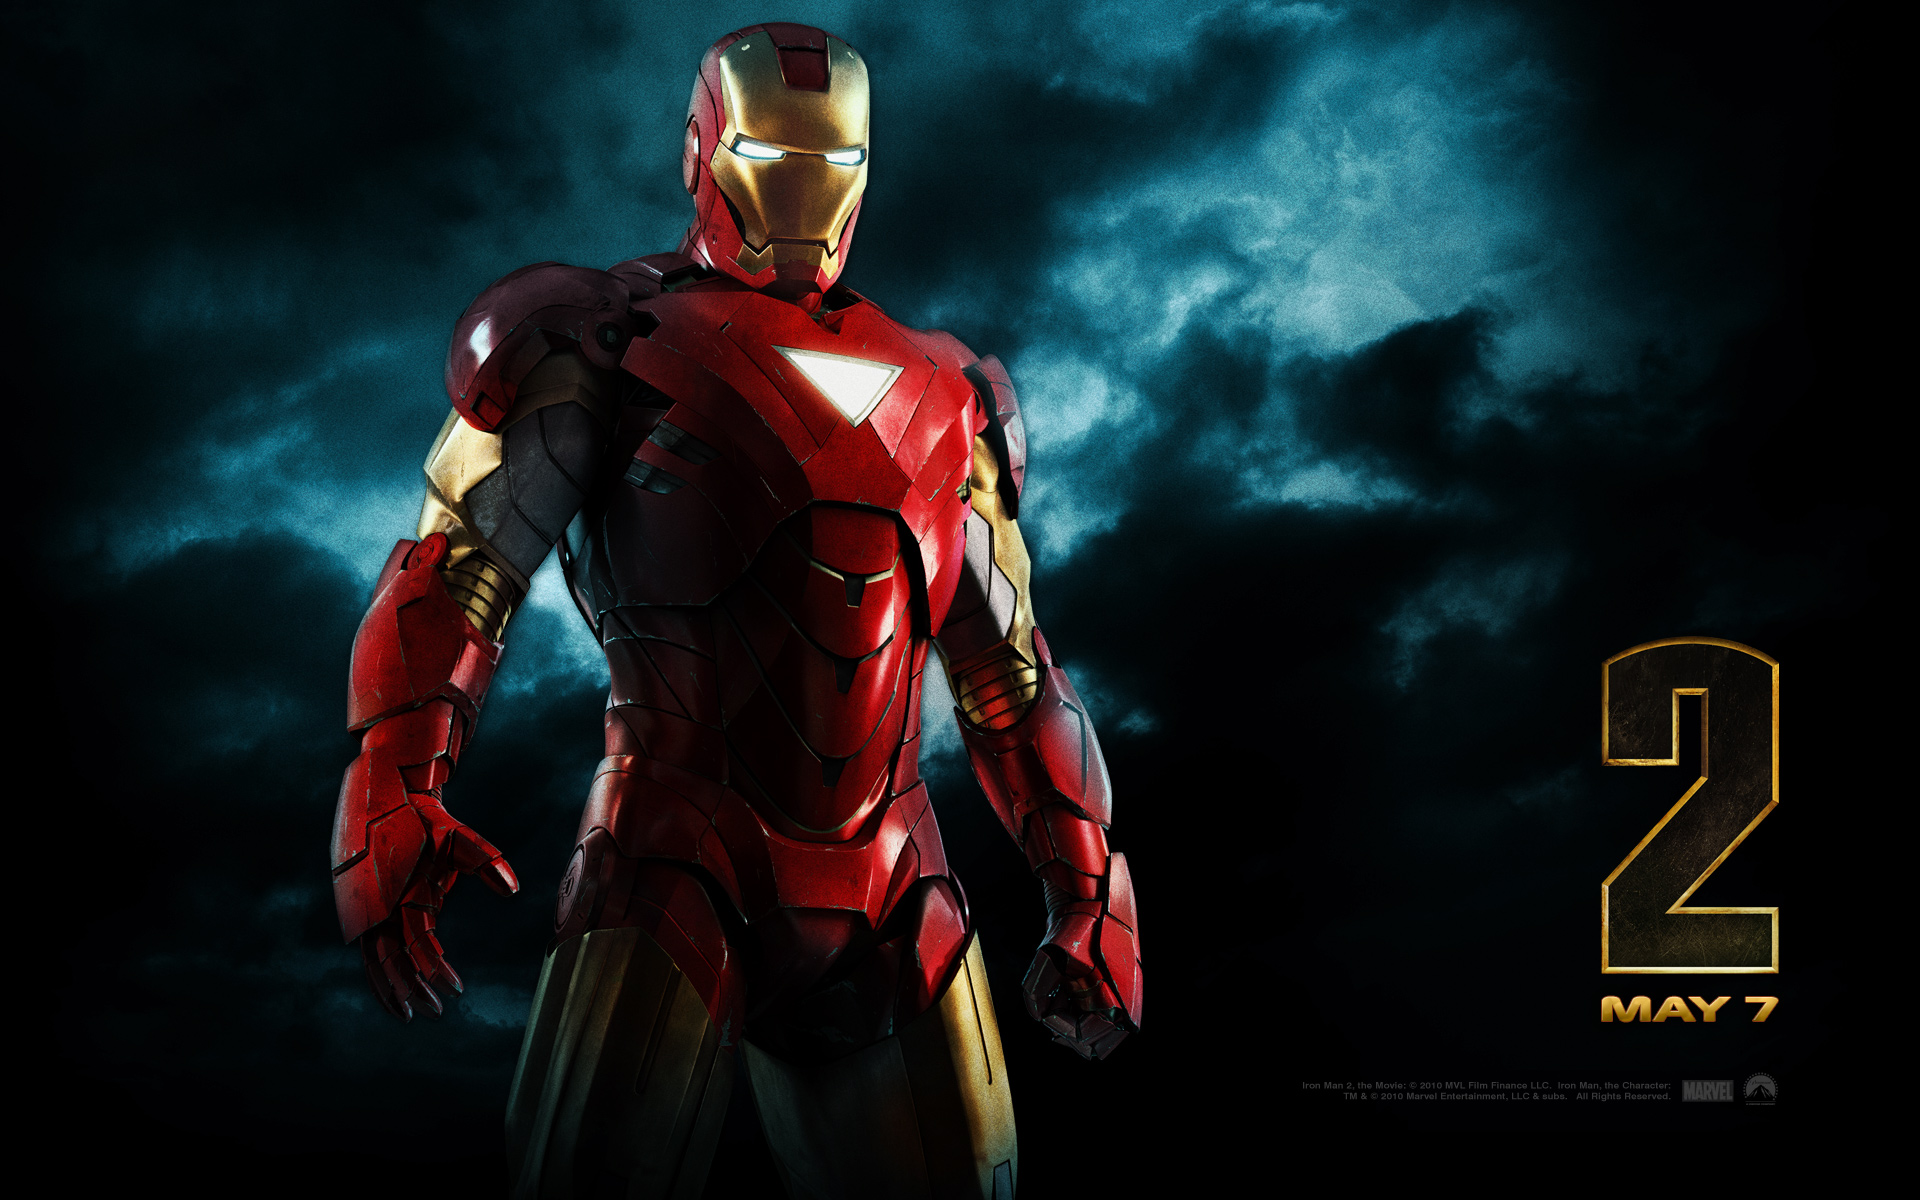 IRON MAN  1920x1200 HD Wallpaper